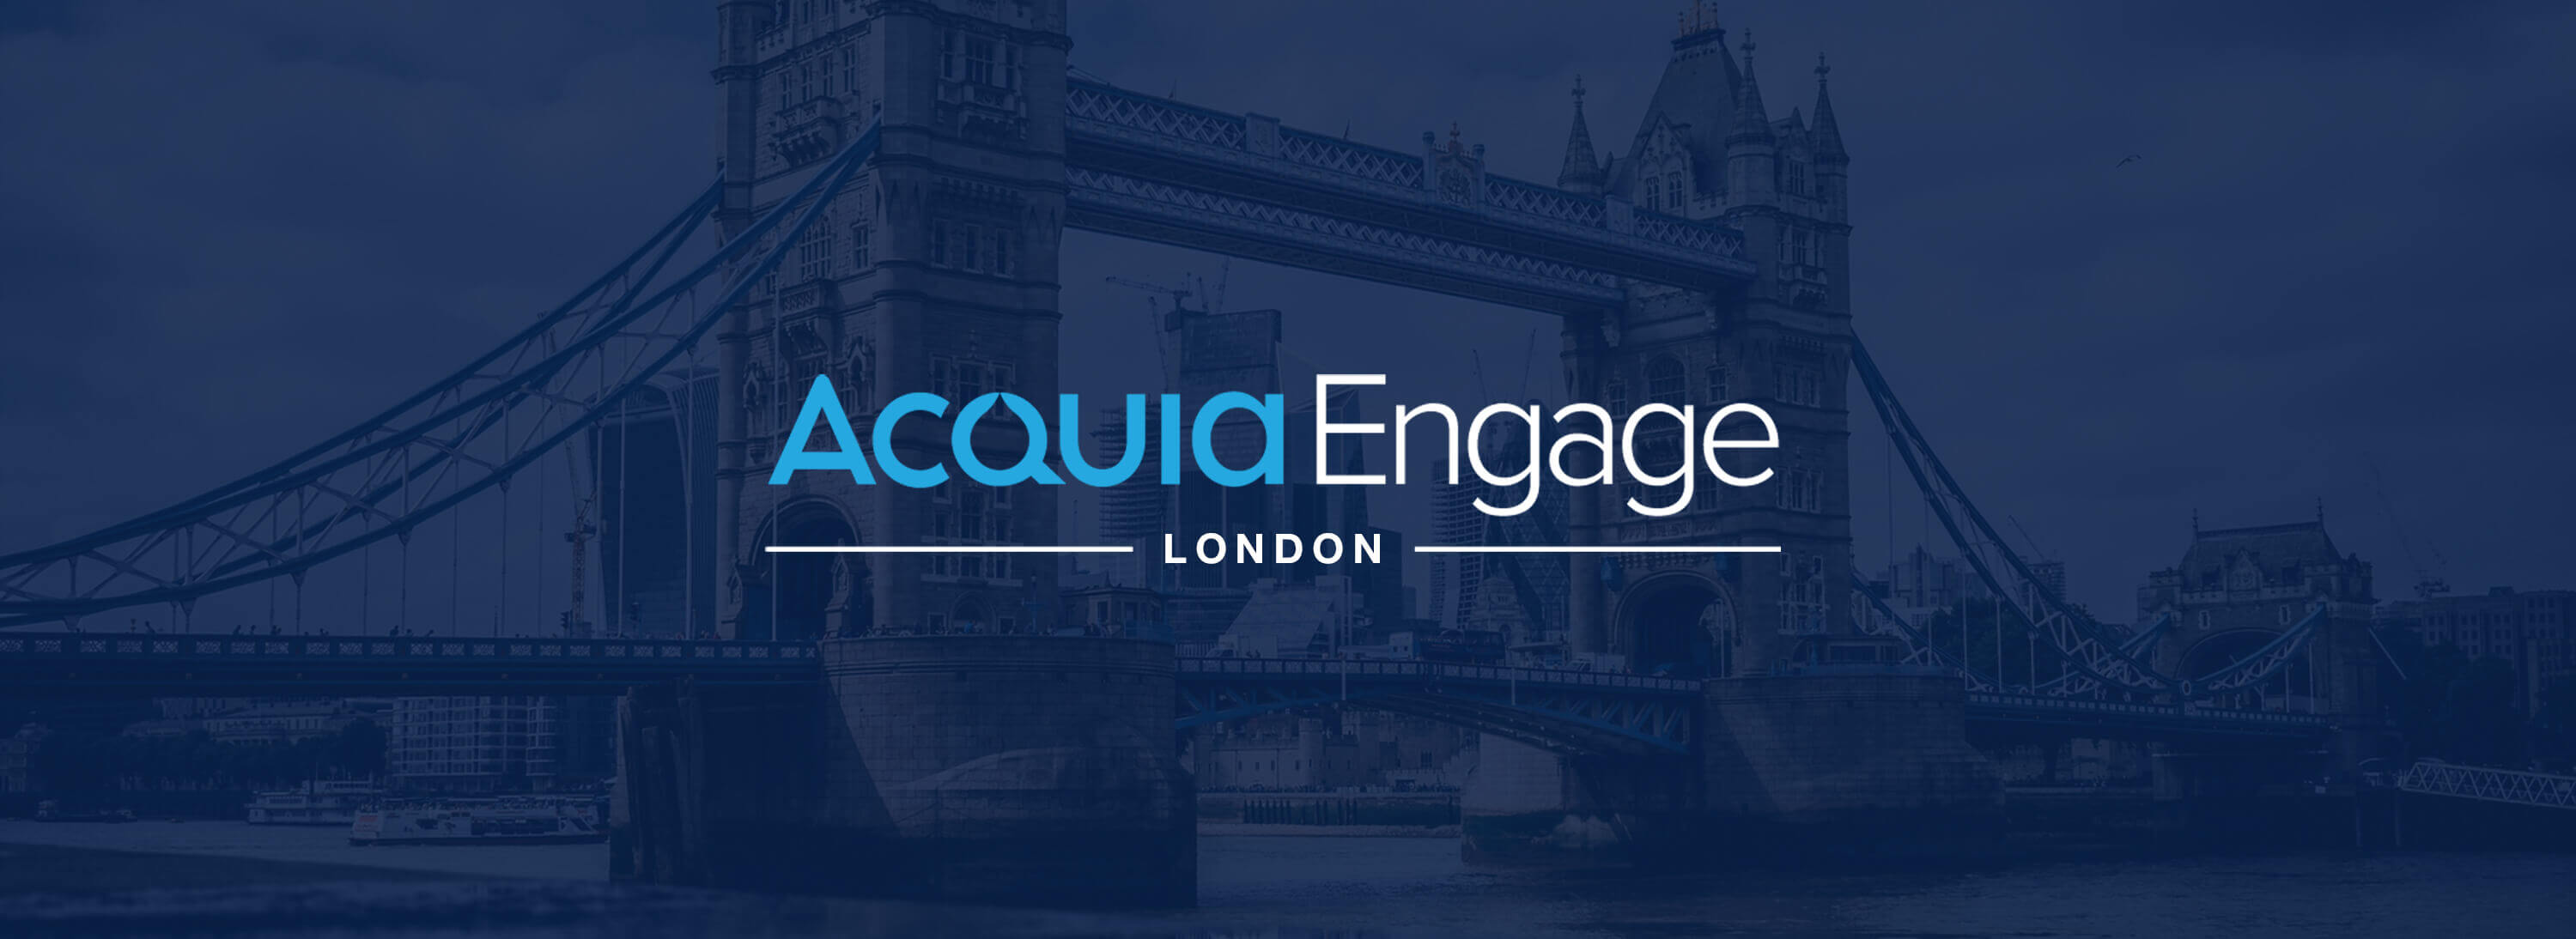 Header of Acquia Engage London blog